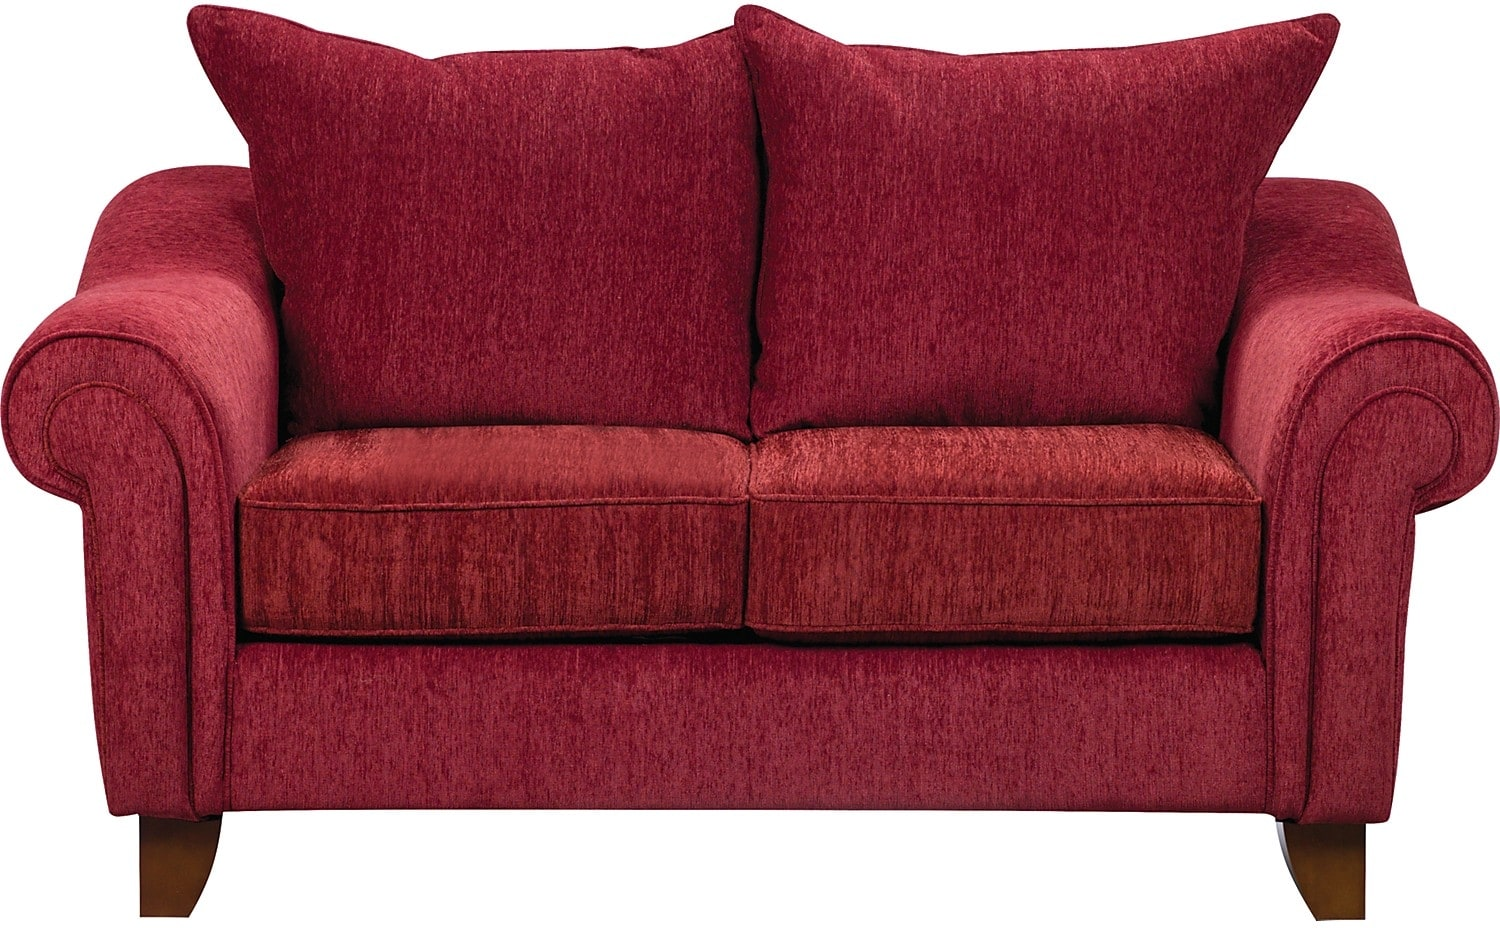 Reese chenille loveseat red the brick Chenille sofa and loveseat